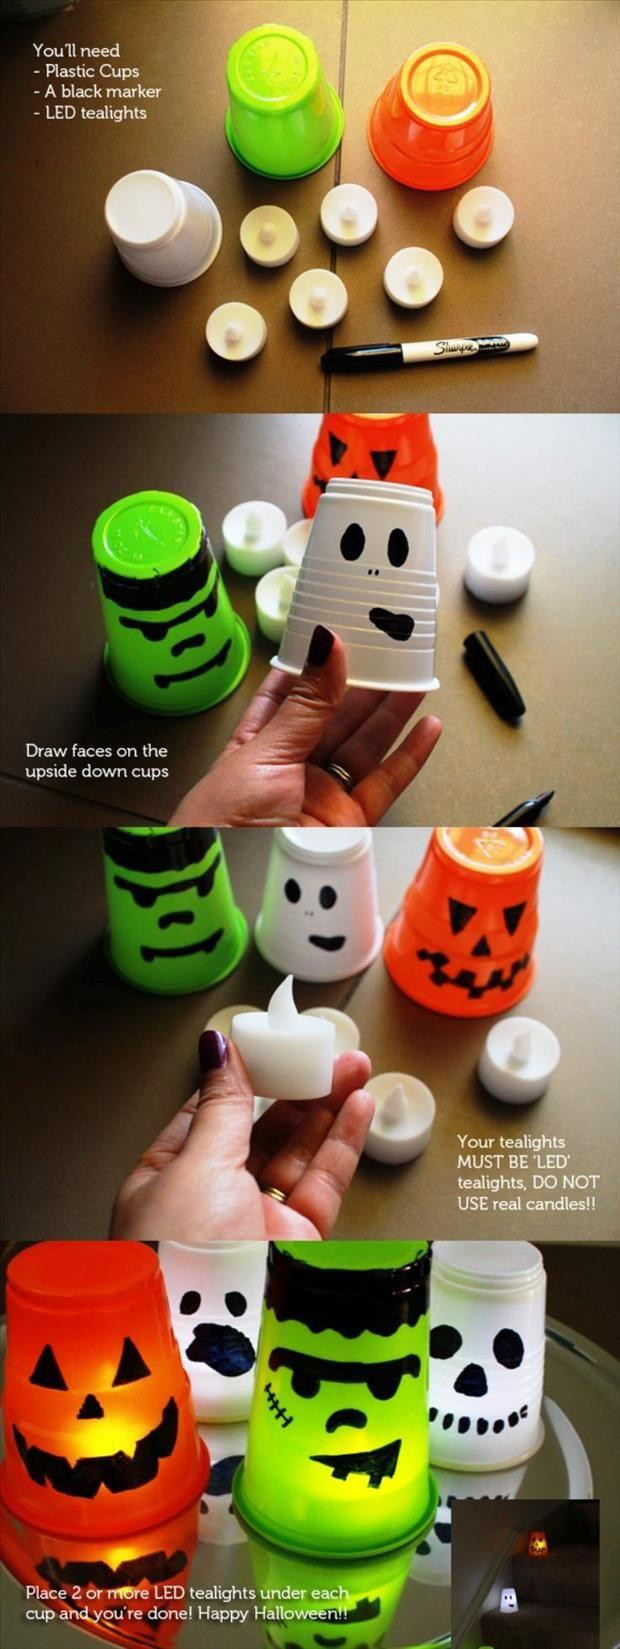 Halloween Party Craft Ideas  Fun DIY Halloween Craft Ideas 35 Pics